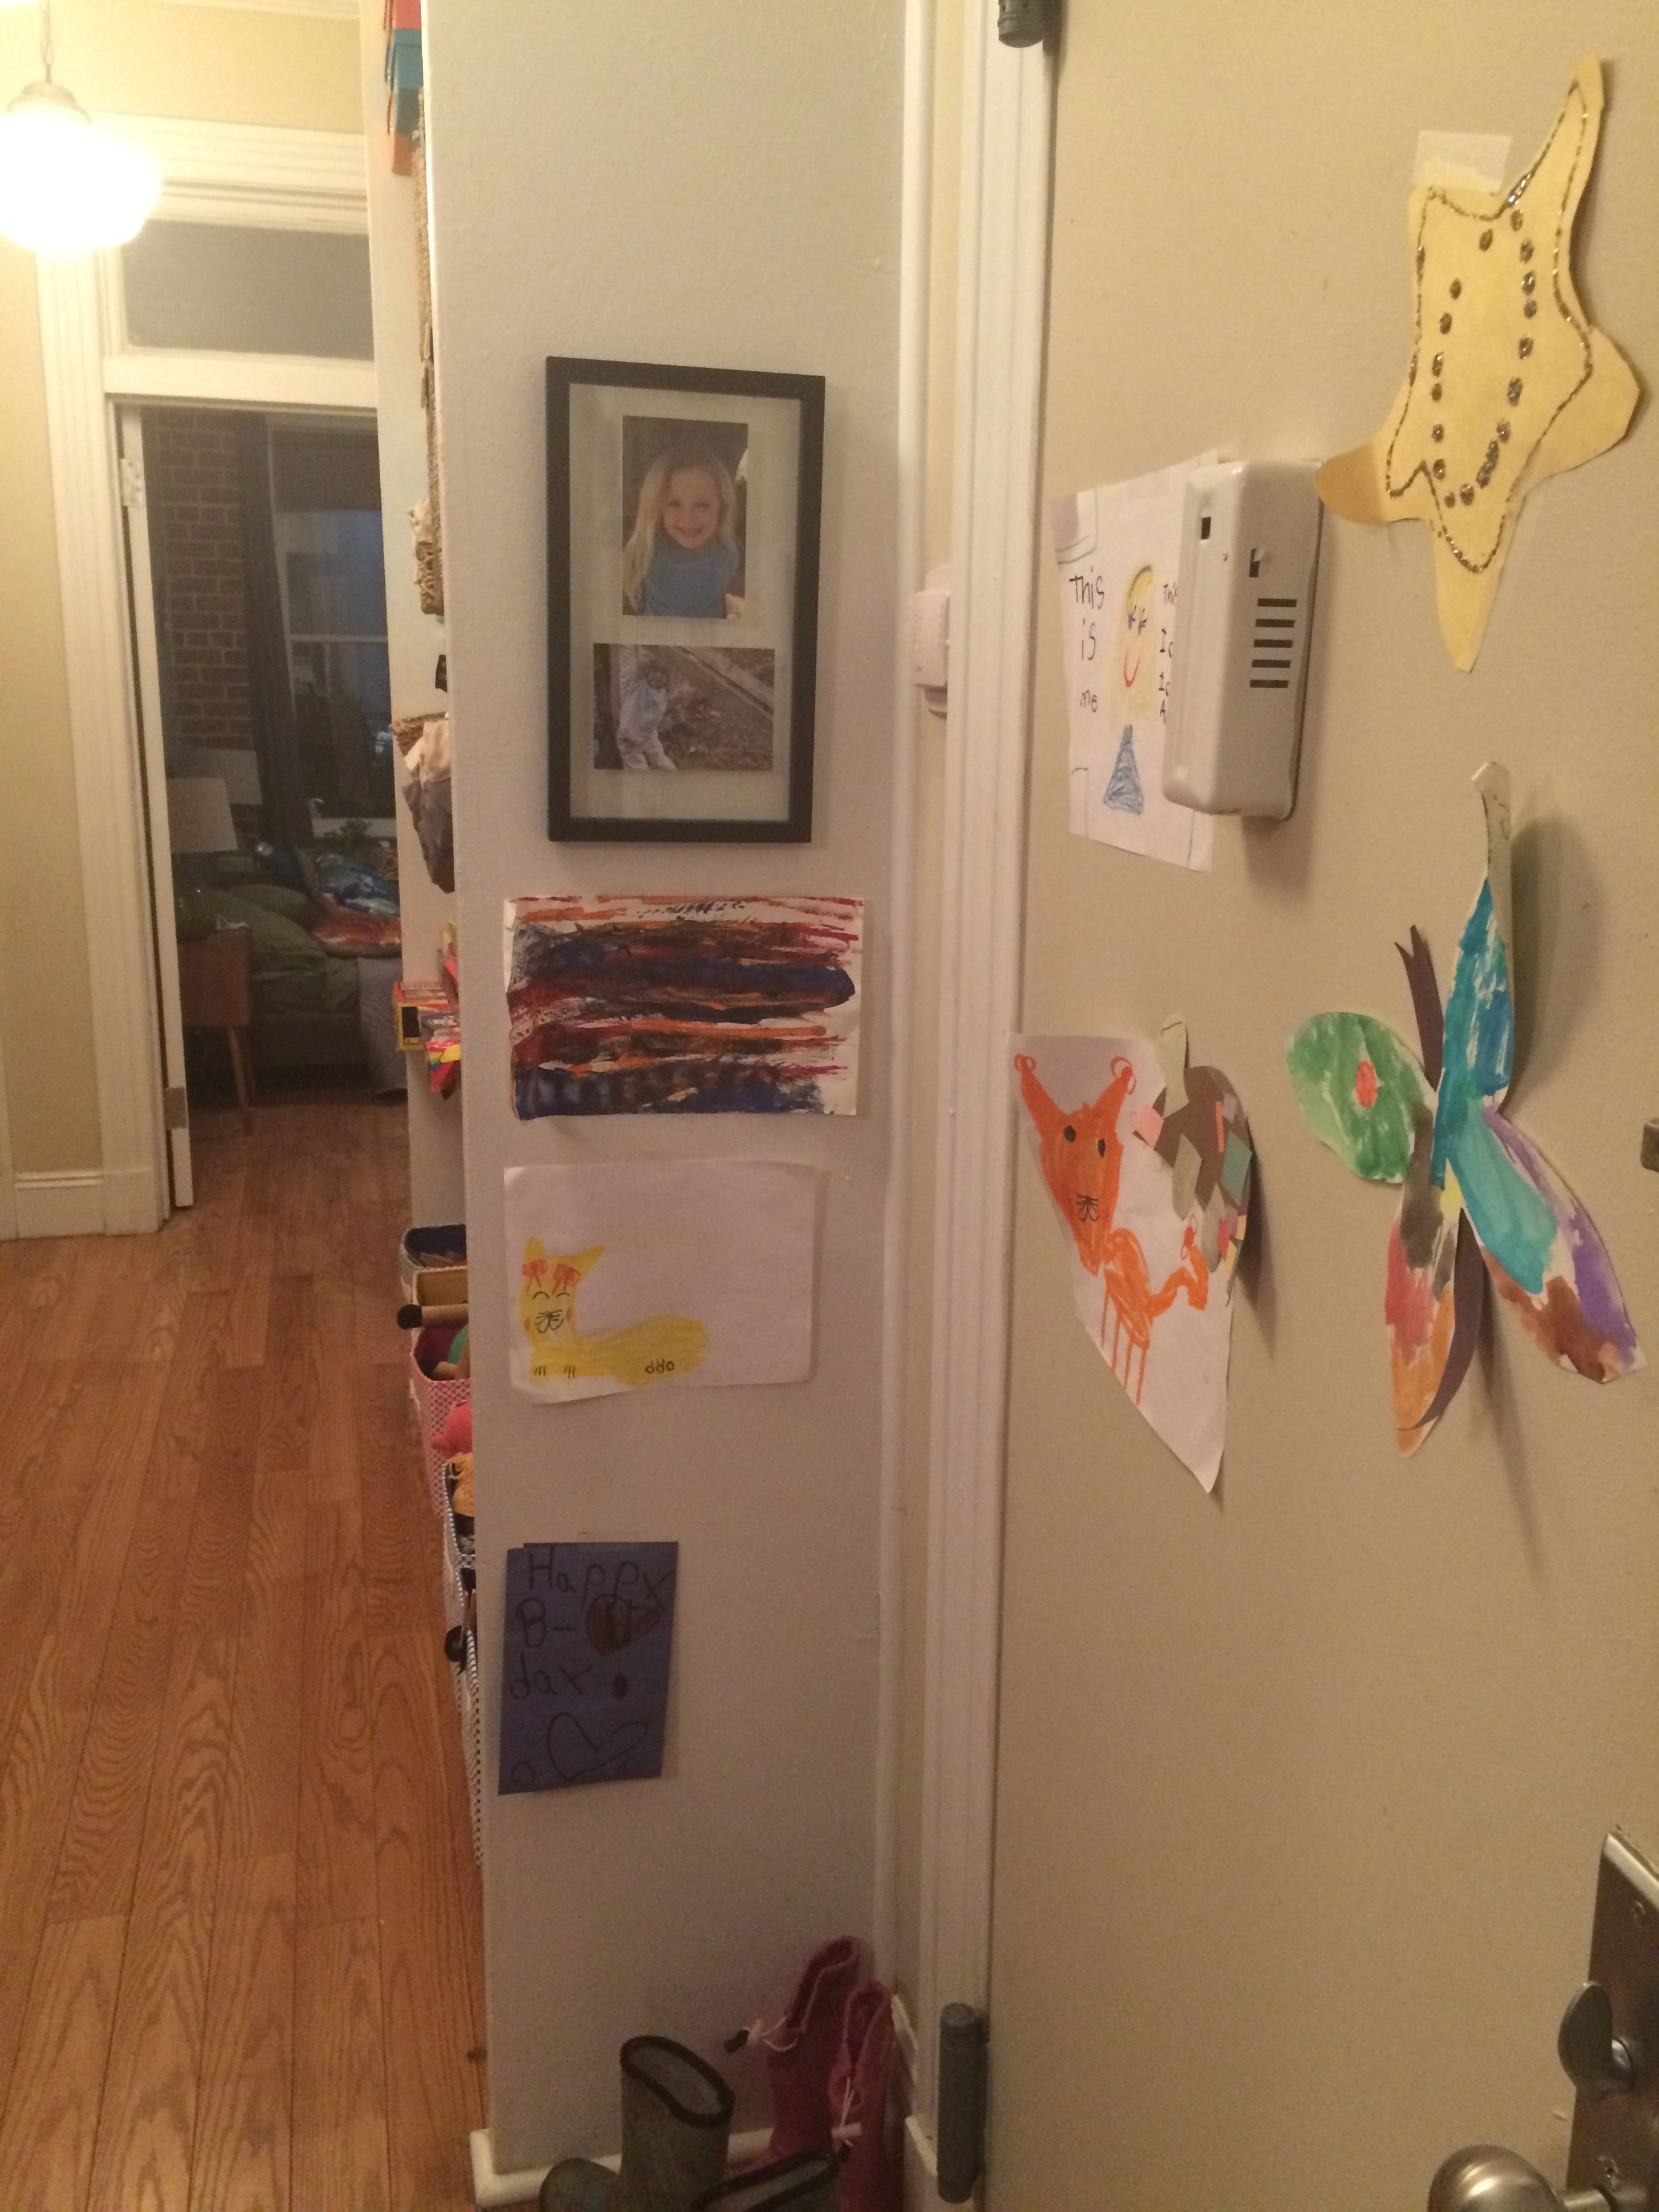 Parents can use extra wall space to display their kids art projects